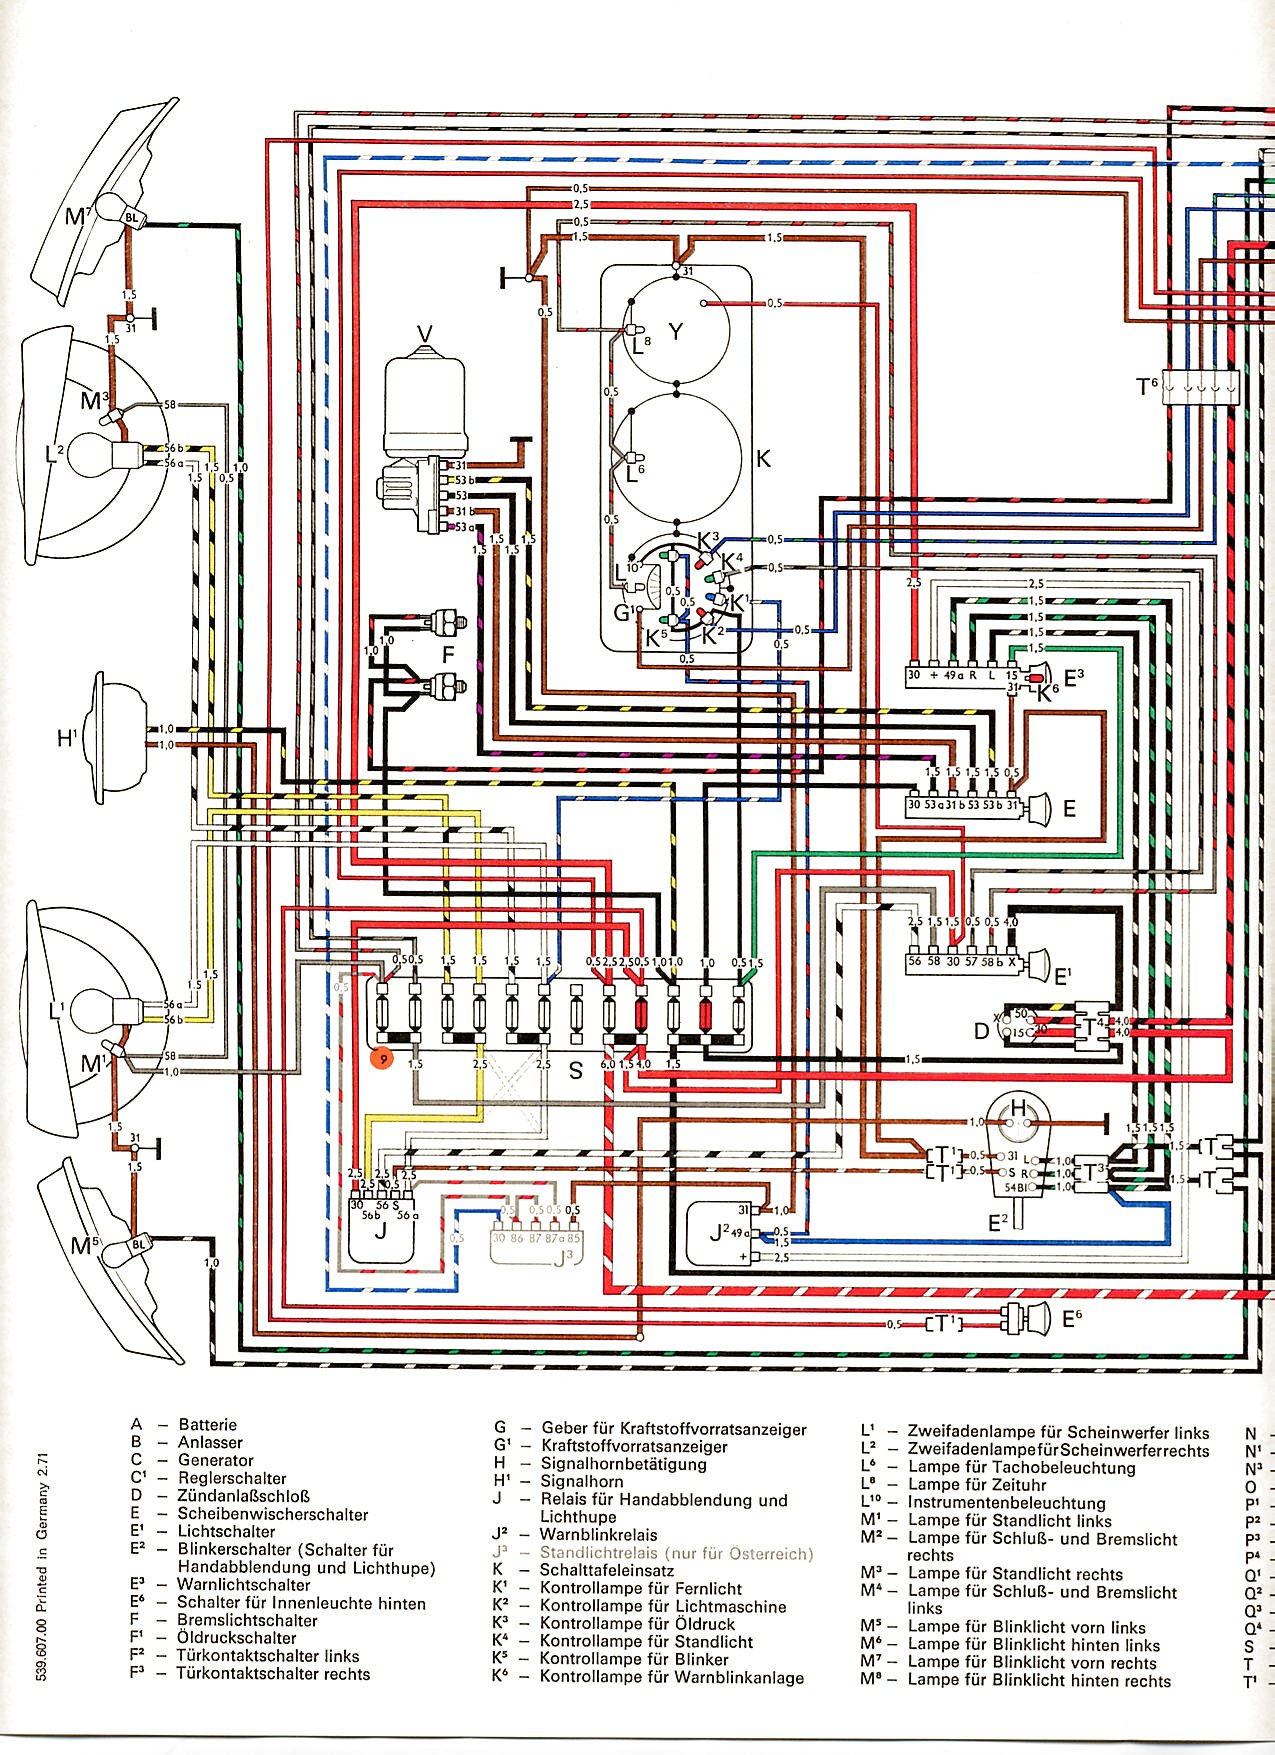 WRG-8370] Vw T5 Wiring Diagram Download on lighting diagrams, troubleshooting diagrams, hvac diagrams, sincgars radio configurations diagrams, engine diagrams, switch diagrams, friendship bracelet diagrams, pinout diagrams, internet of things diagrams, smart car diagrams, series and parallel circuits diagrams, led circuit diagrams, electronic circuit diagrams, battery diagrams, honda motorcycle repair diagrams, gmc fuse box diagrams, electrical diagrams, motor diagrams, transformer diagrams,